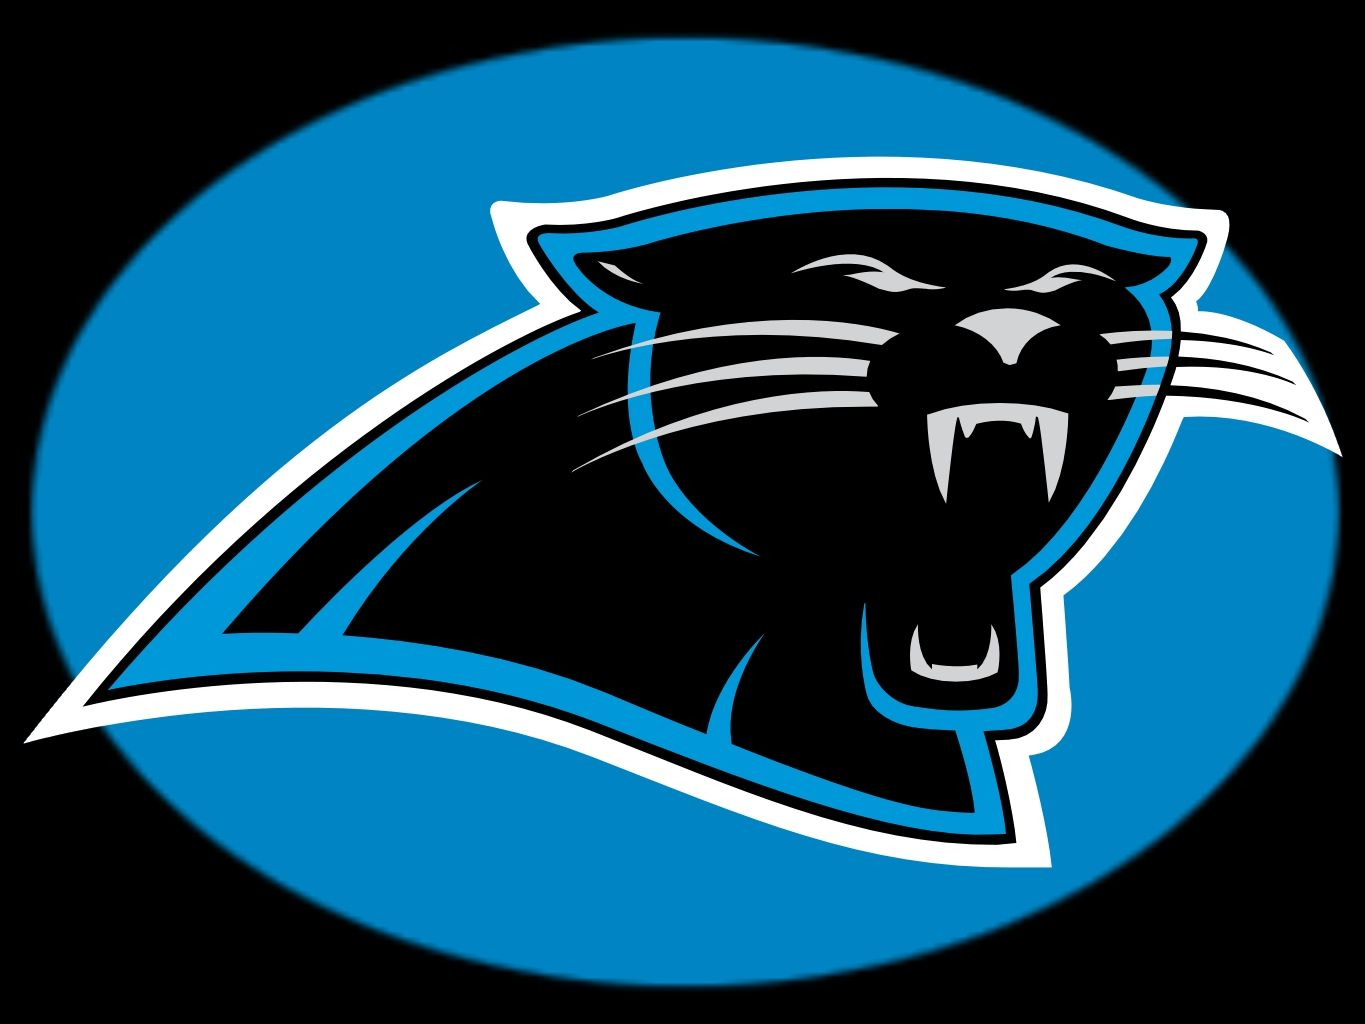 The Better Business Bureau Alerts Fans Searching For Tickets Of Coming Panthers Games To Be Caut